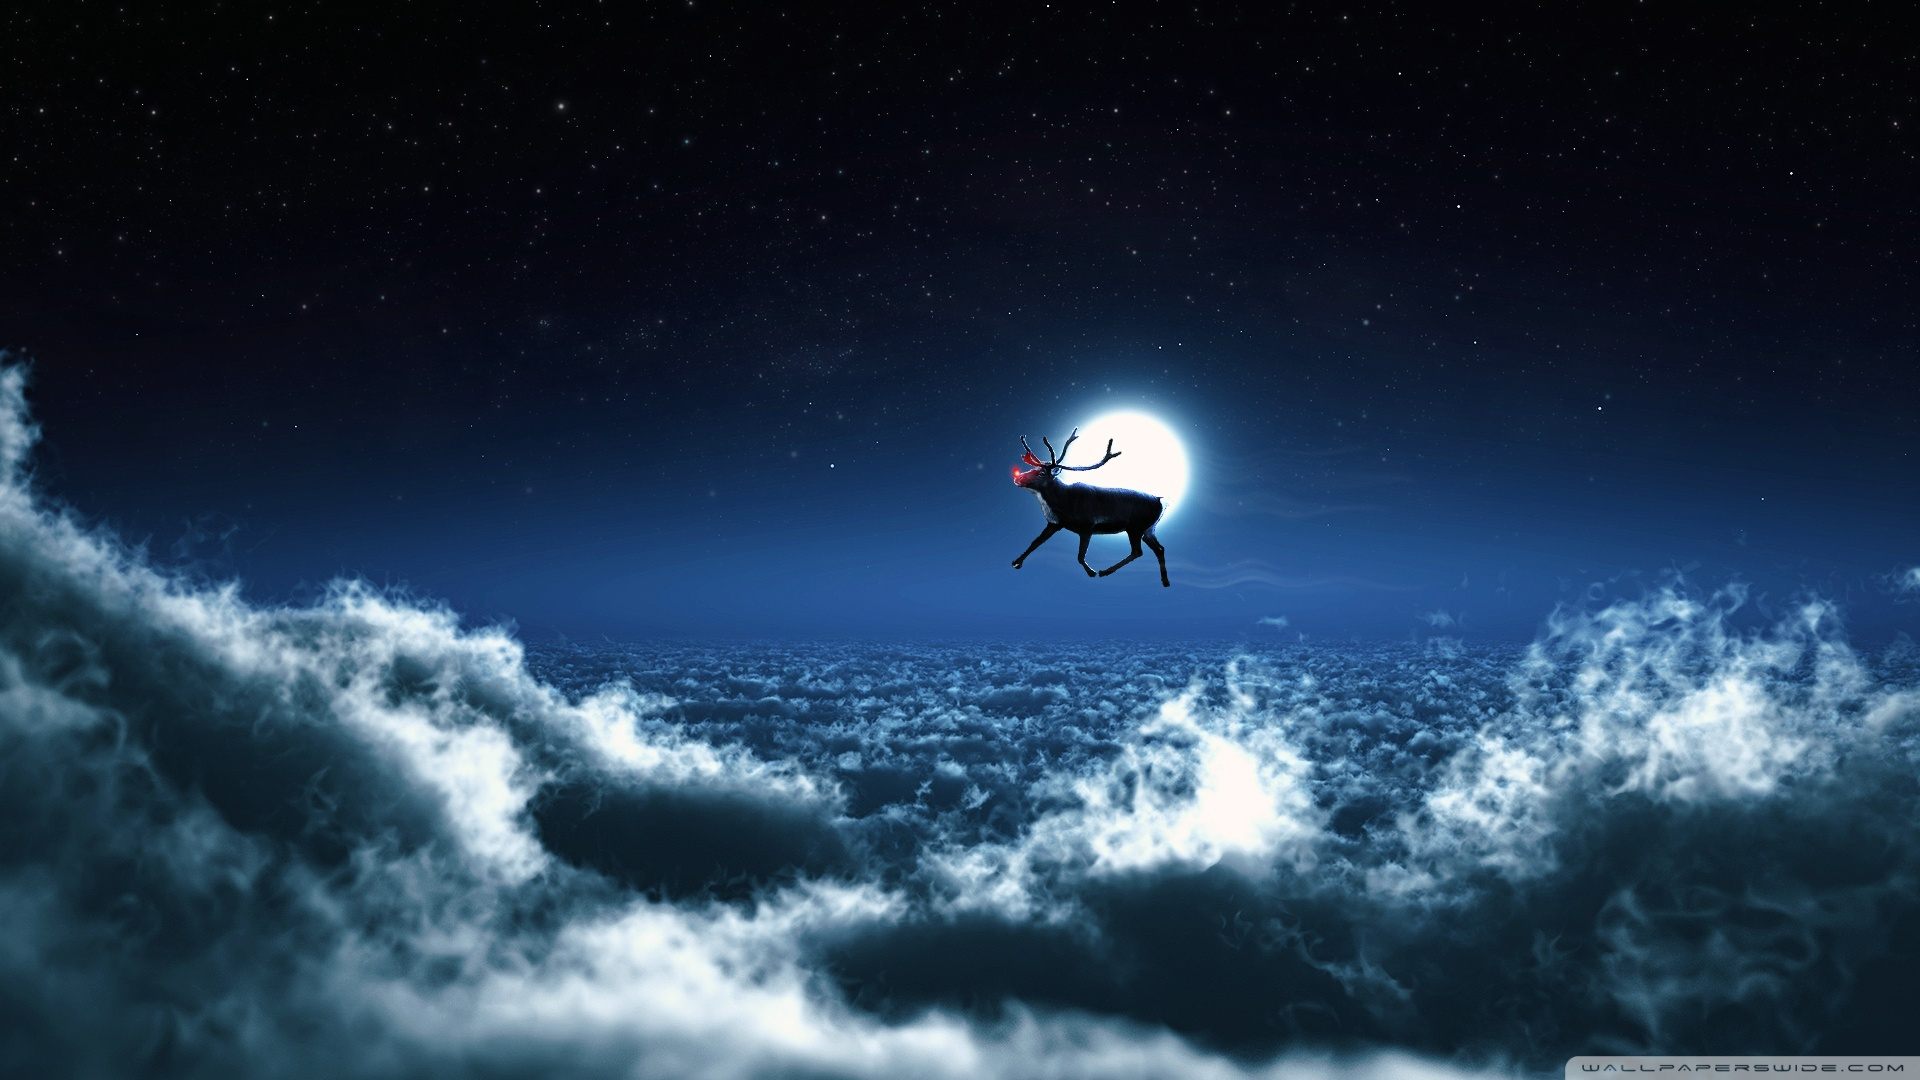 rudolph_flies_solo-wallpaper-1920x1080